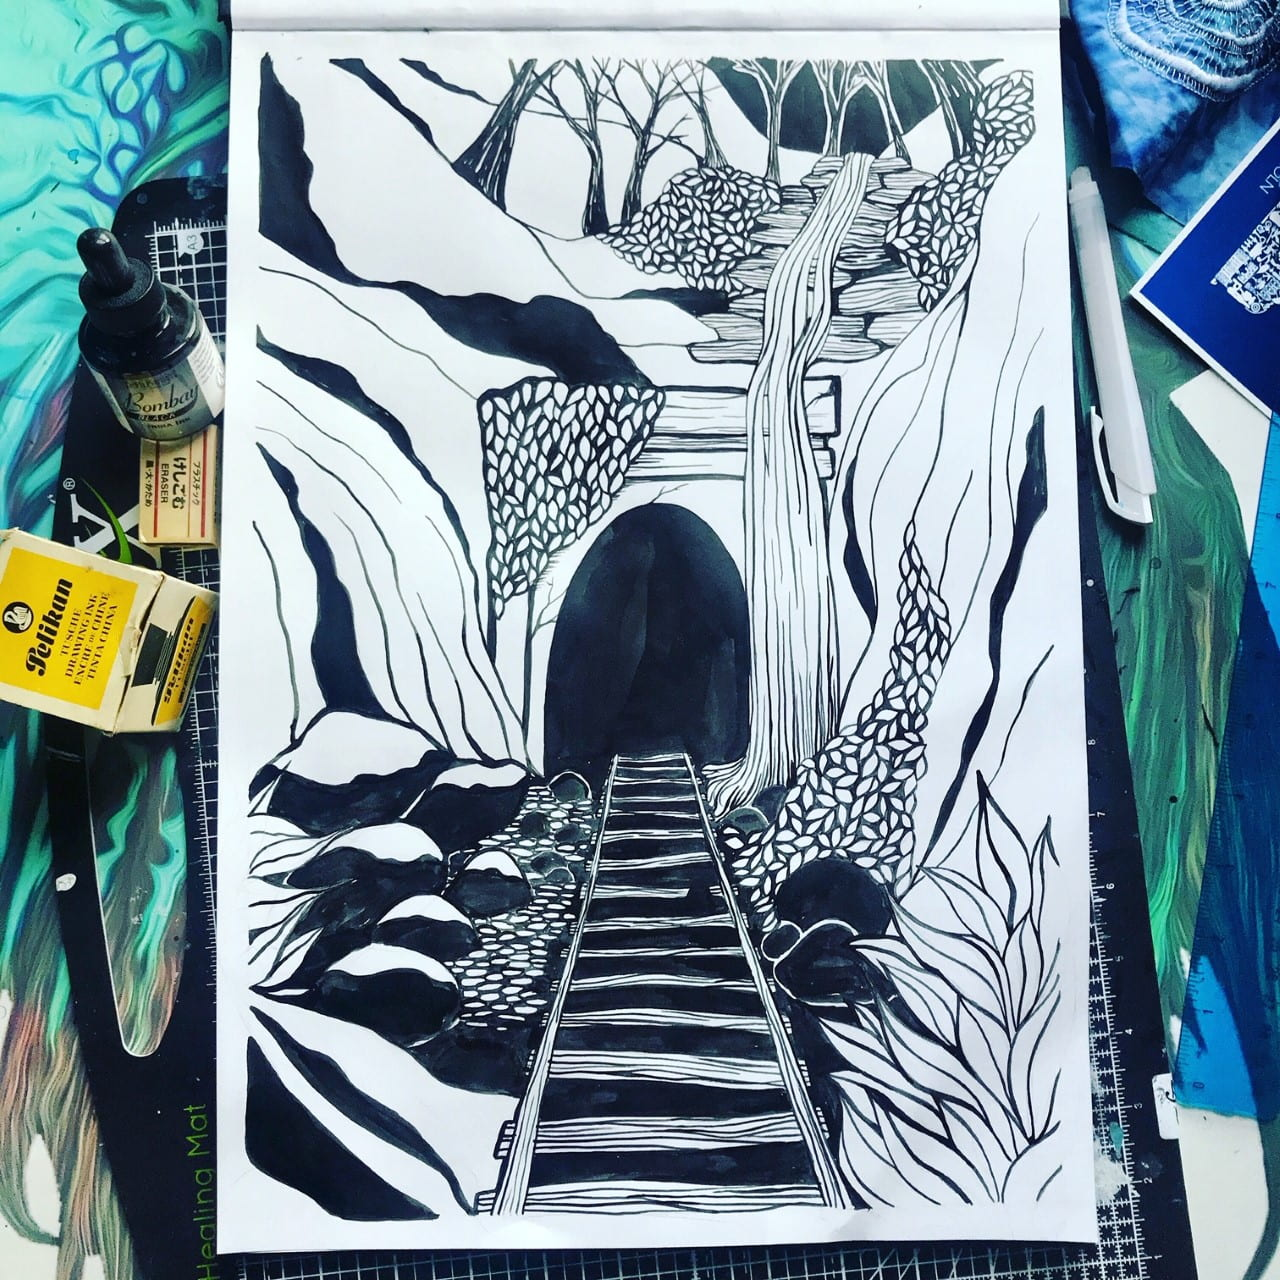 Photograph of a Lino Print of an Abandoned Train Tunnel surrounded by art equipment.